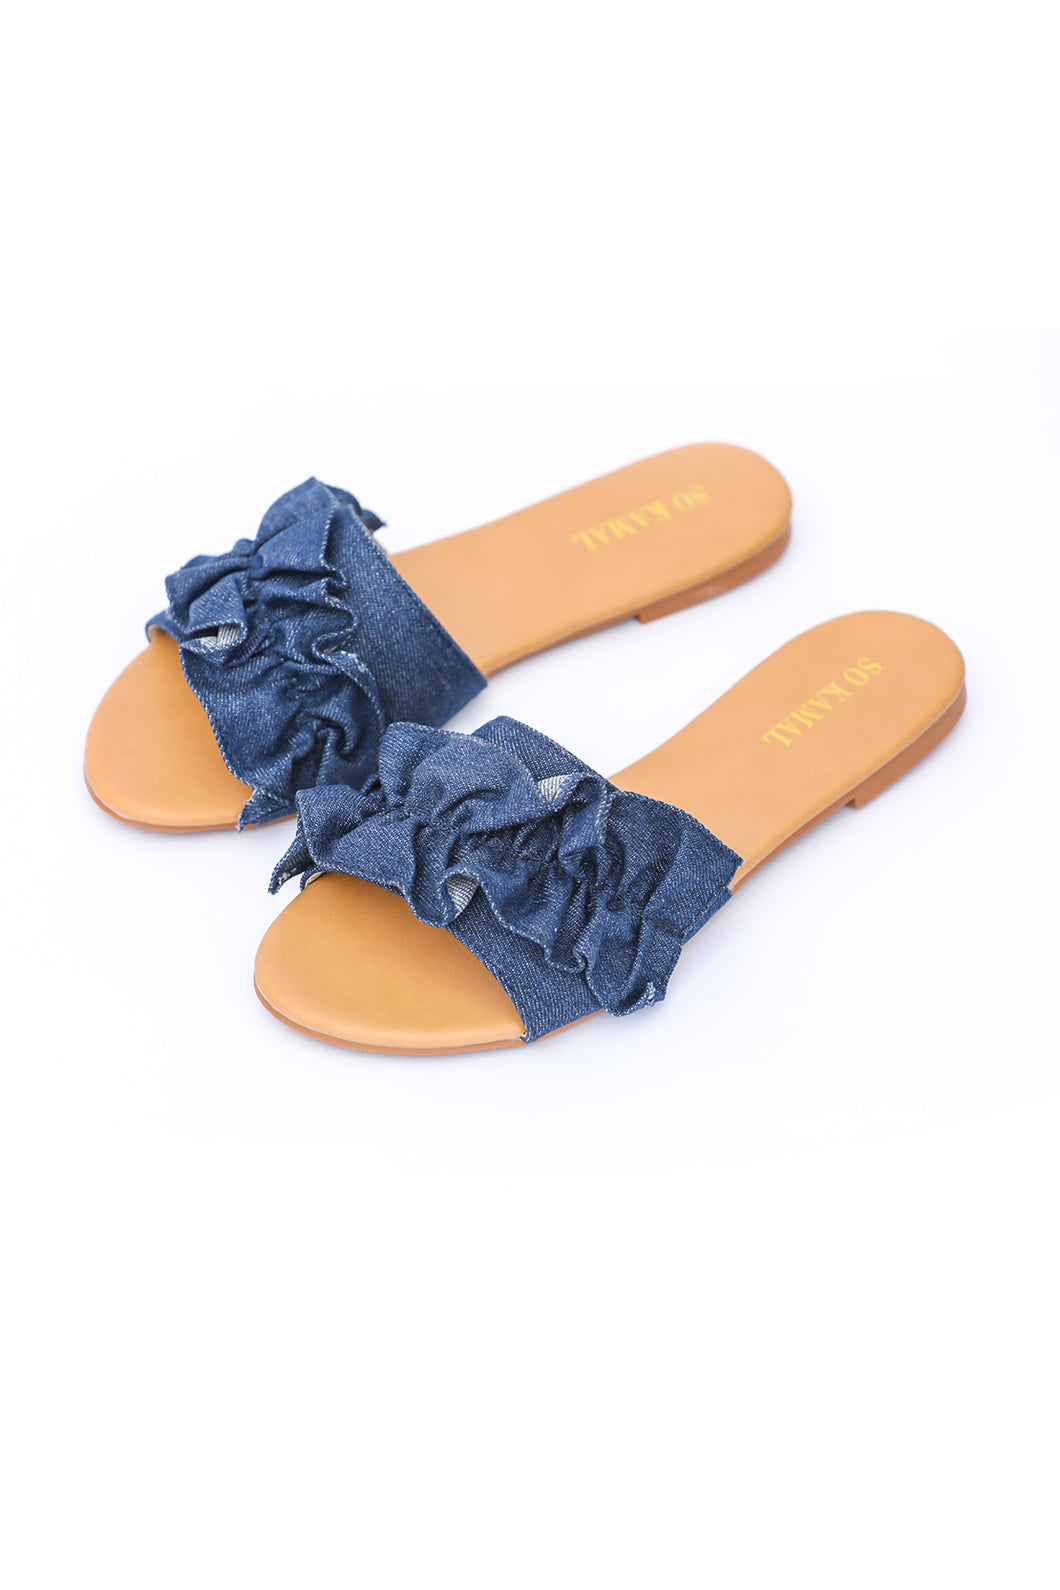 Denim Ruffled Flats - Dark Blue